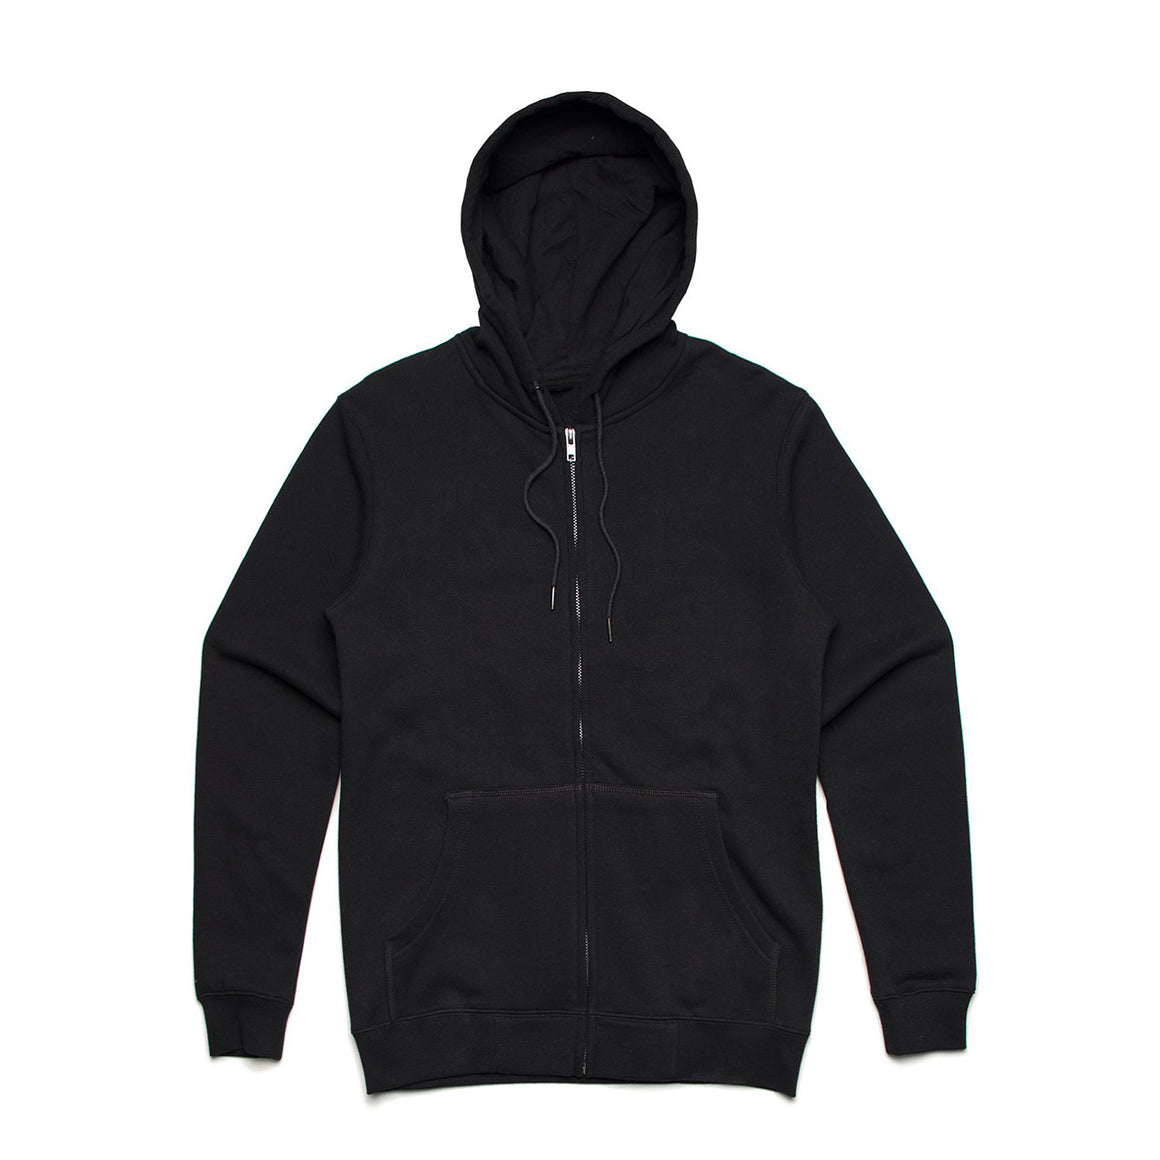 Fifty5 Clothing Index Premium Zip Up Hoodie